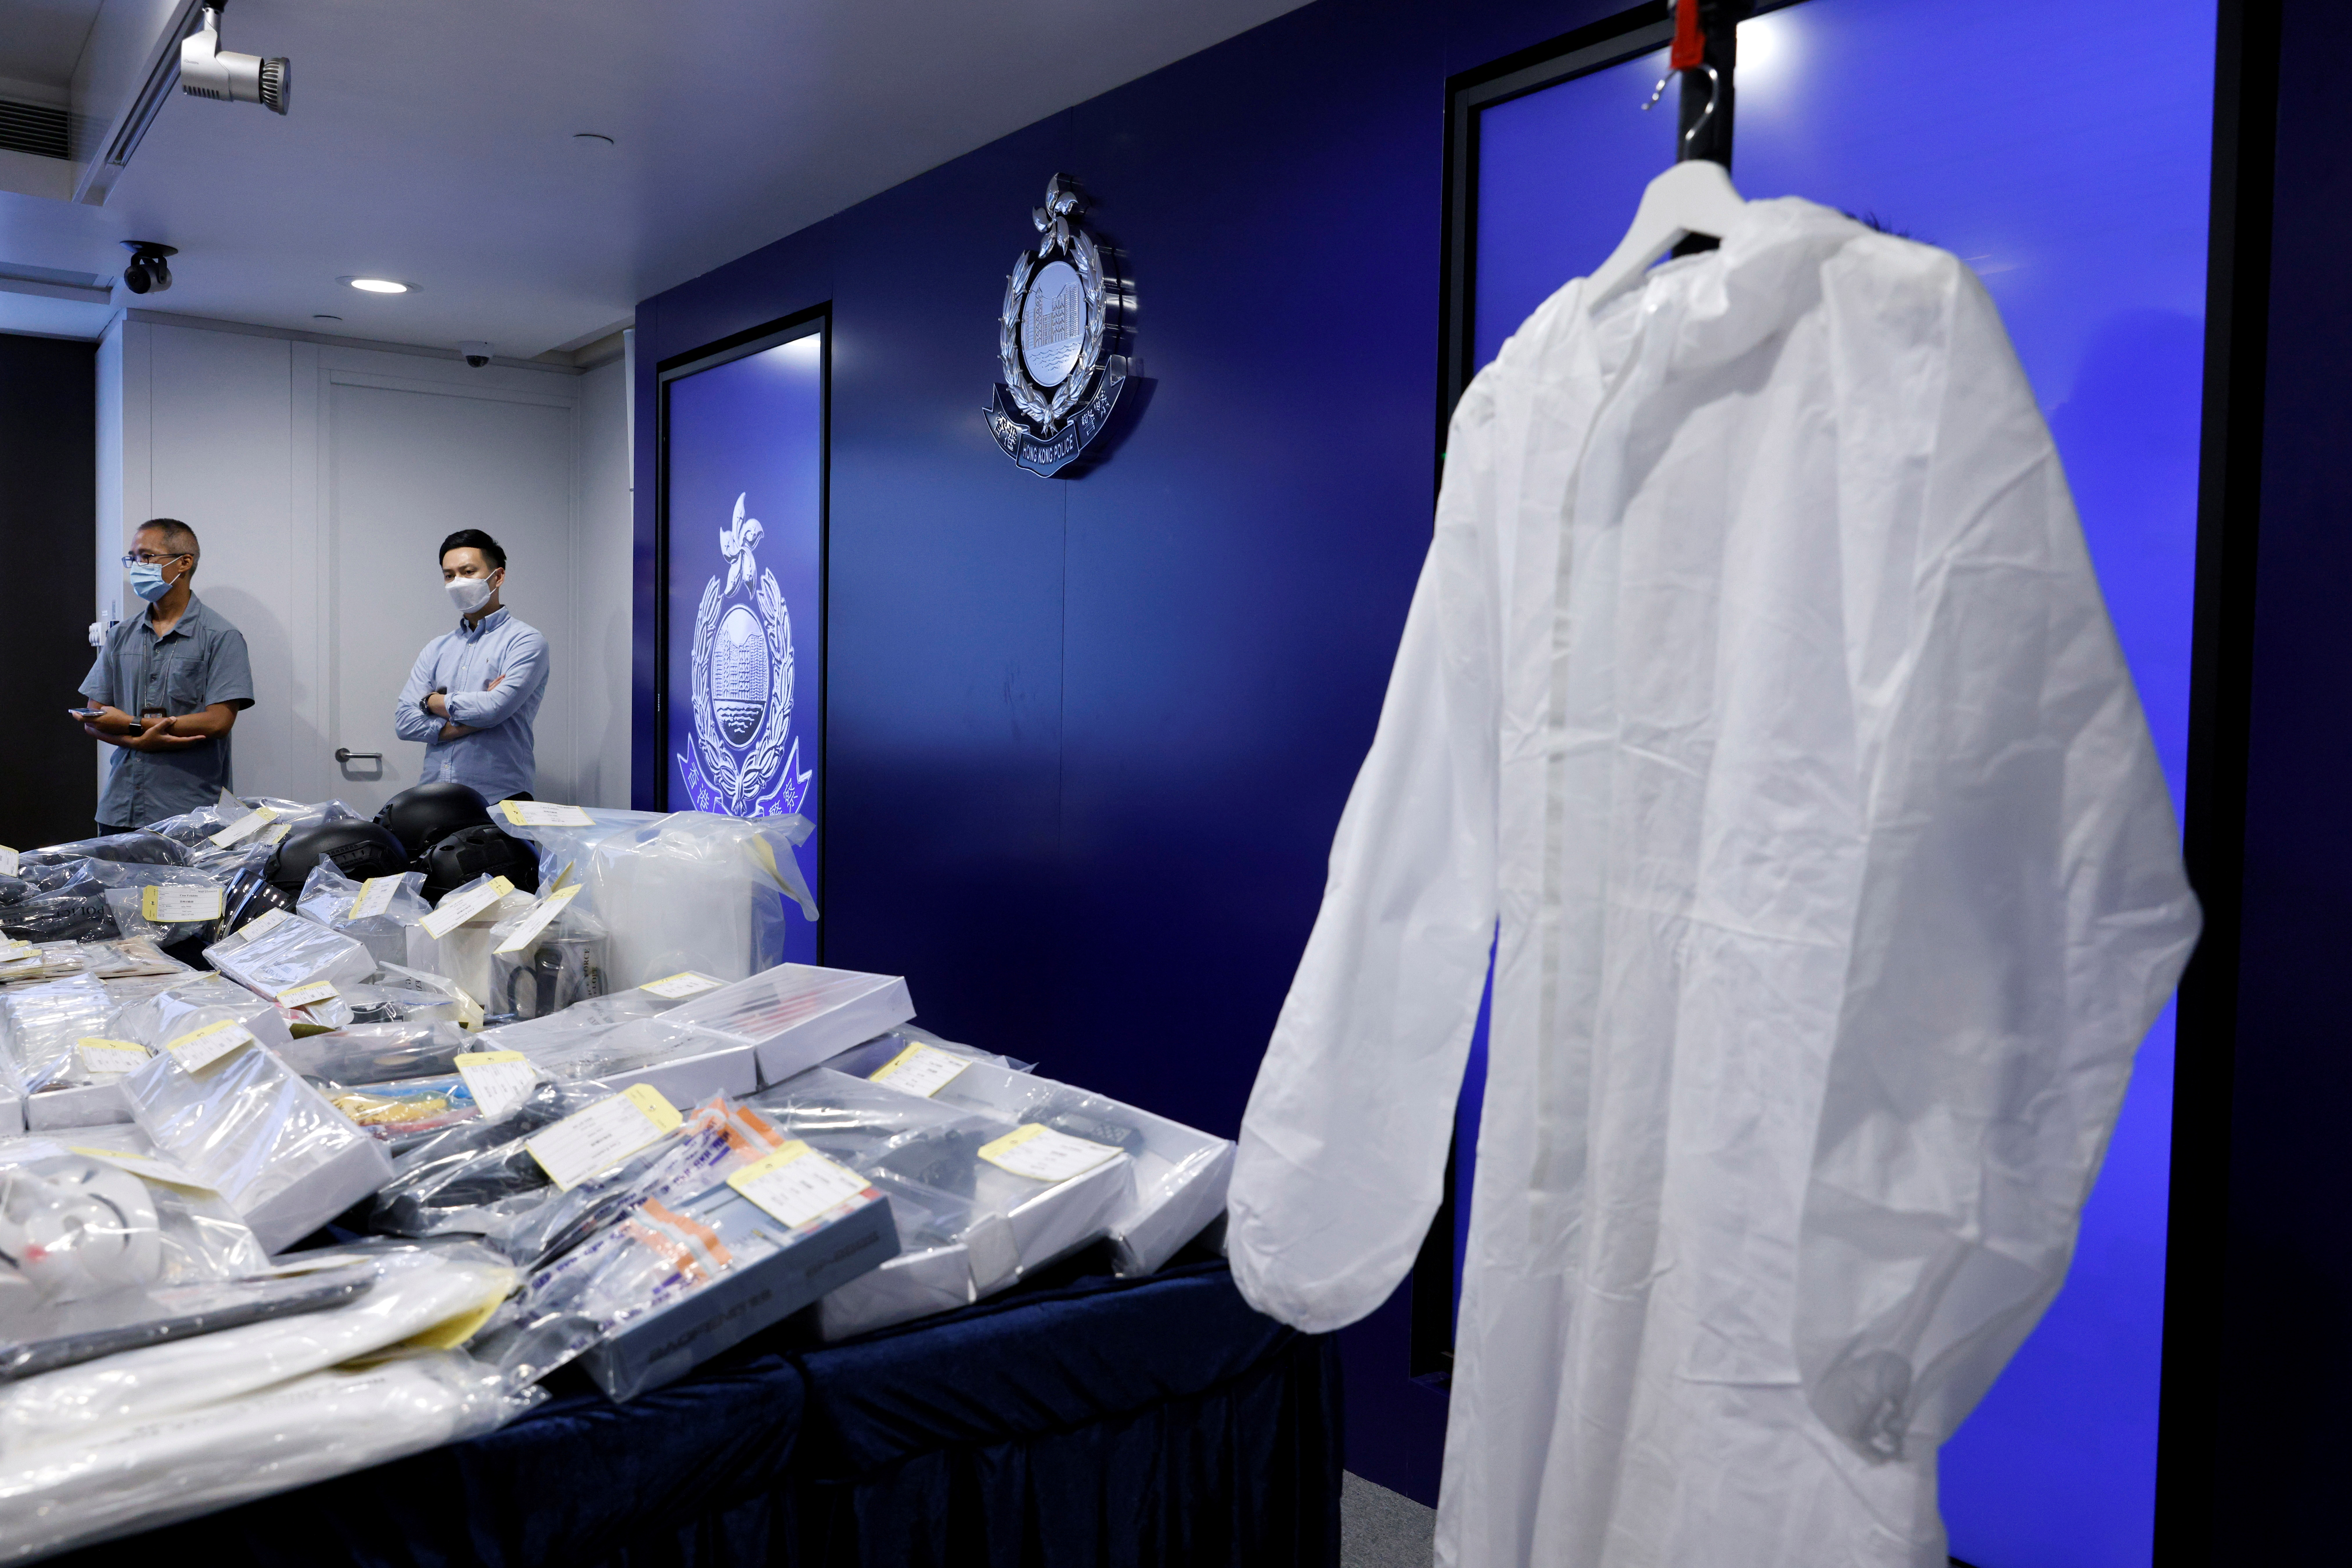 Evidence is seen during a news conference after police's National Security Department arrested nine people they said are suspected of terrorist activities, in Hong Kong, China July 6, 2021. REUTERS/Tyrone Siu